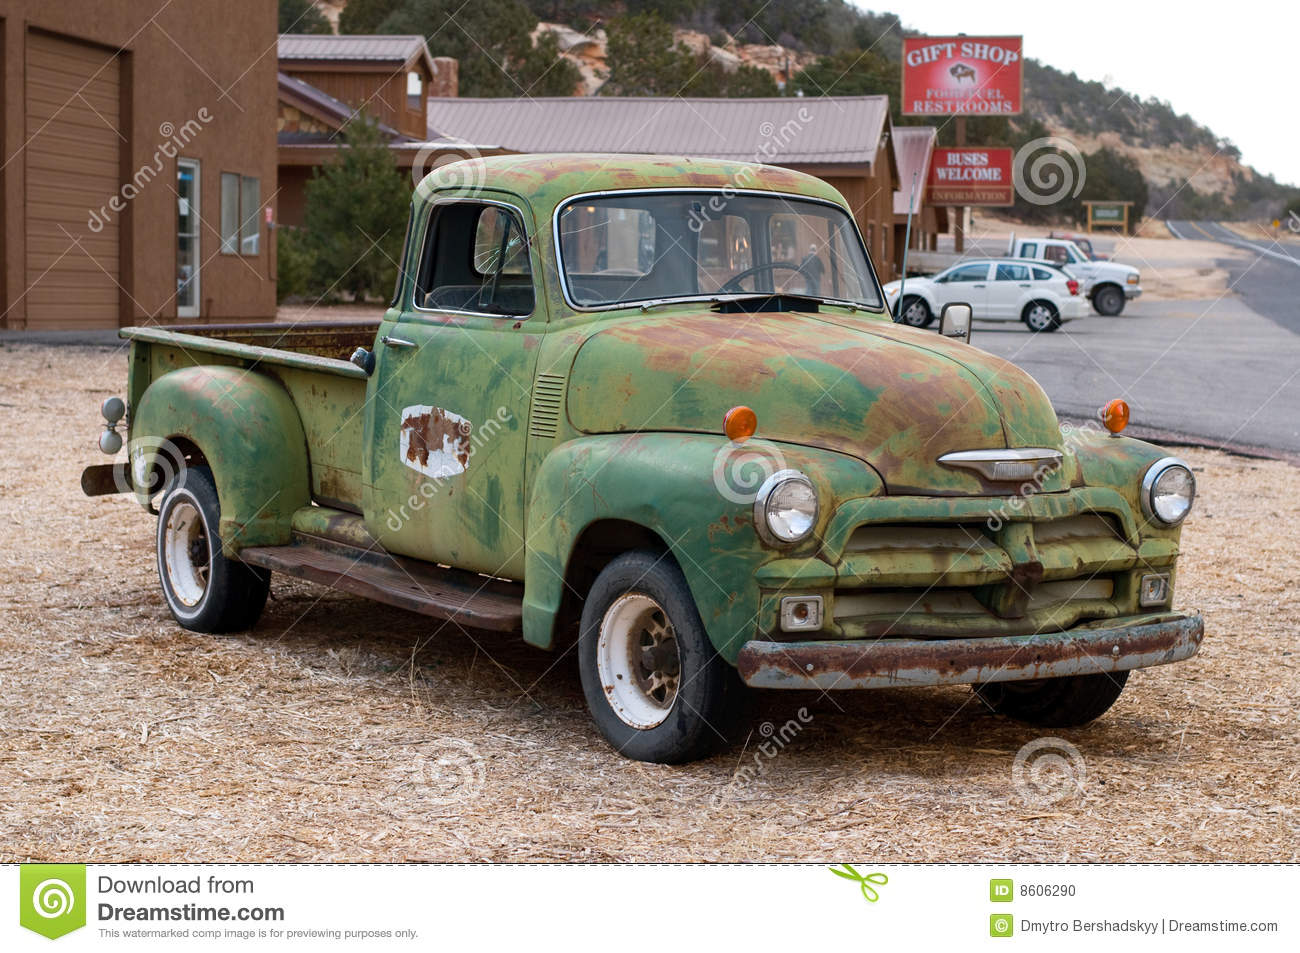 Vintage Pick-Up Truck Stock Photo 8606290 - Megapixl